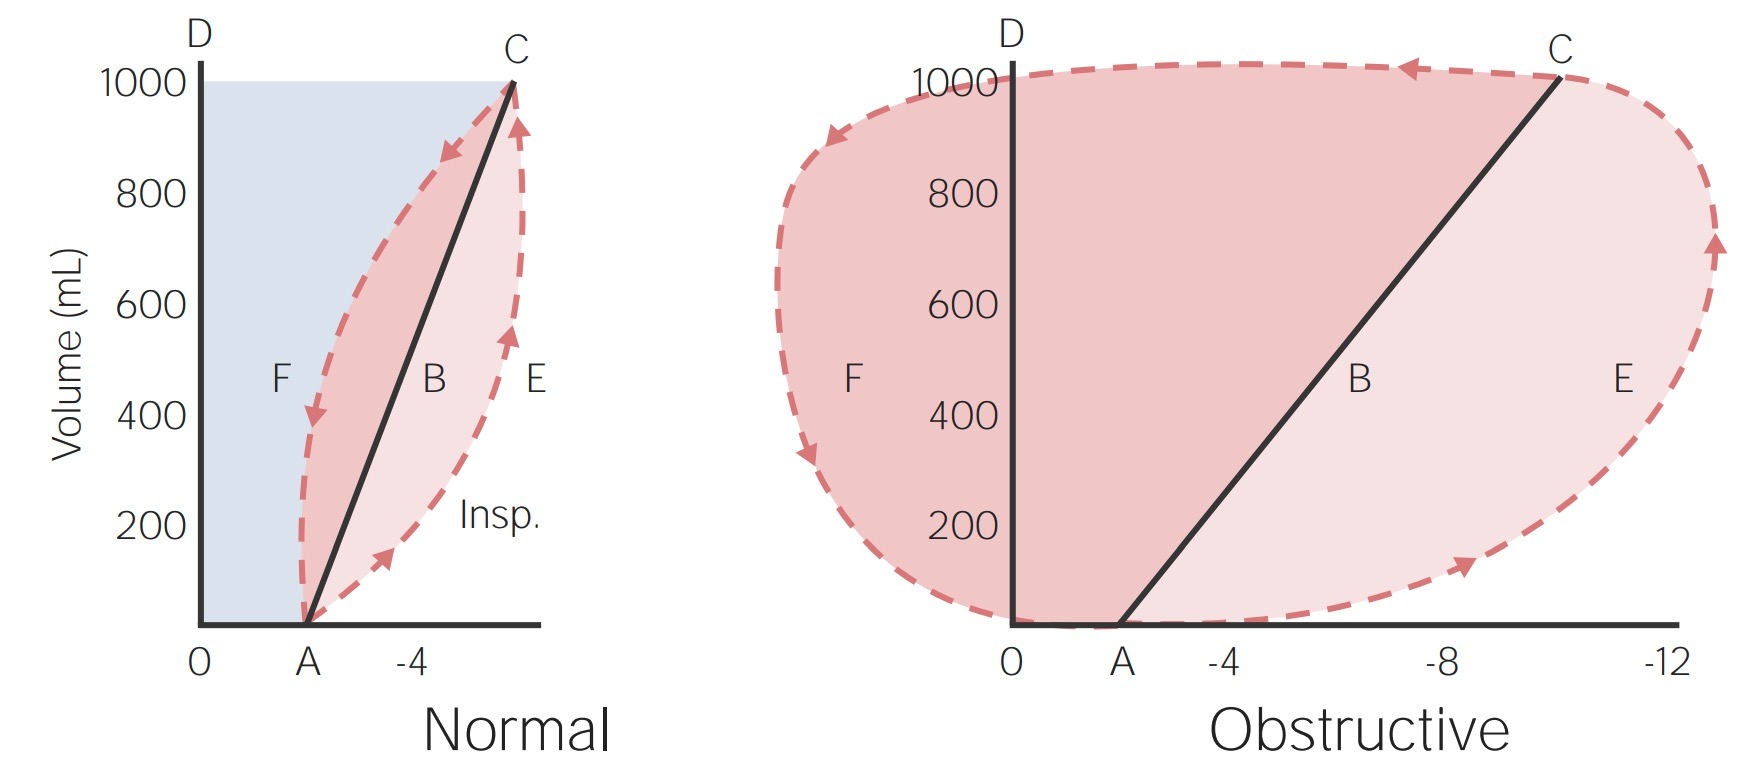 Work of breathing in a normal lung (left) compared to a lung with obstructive pulmonary disease (right)